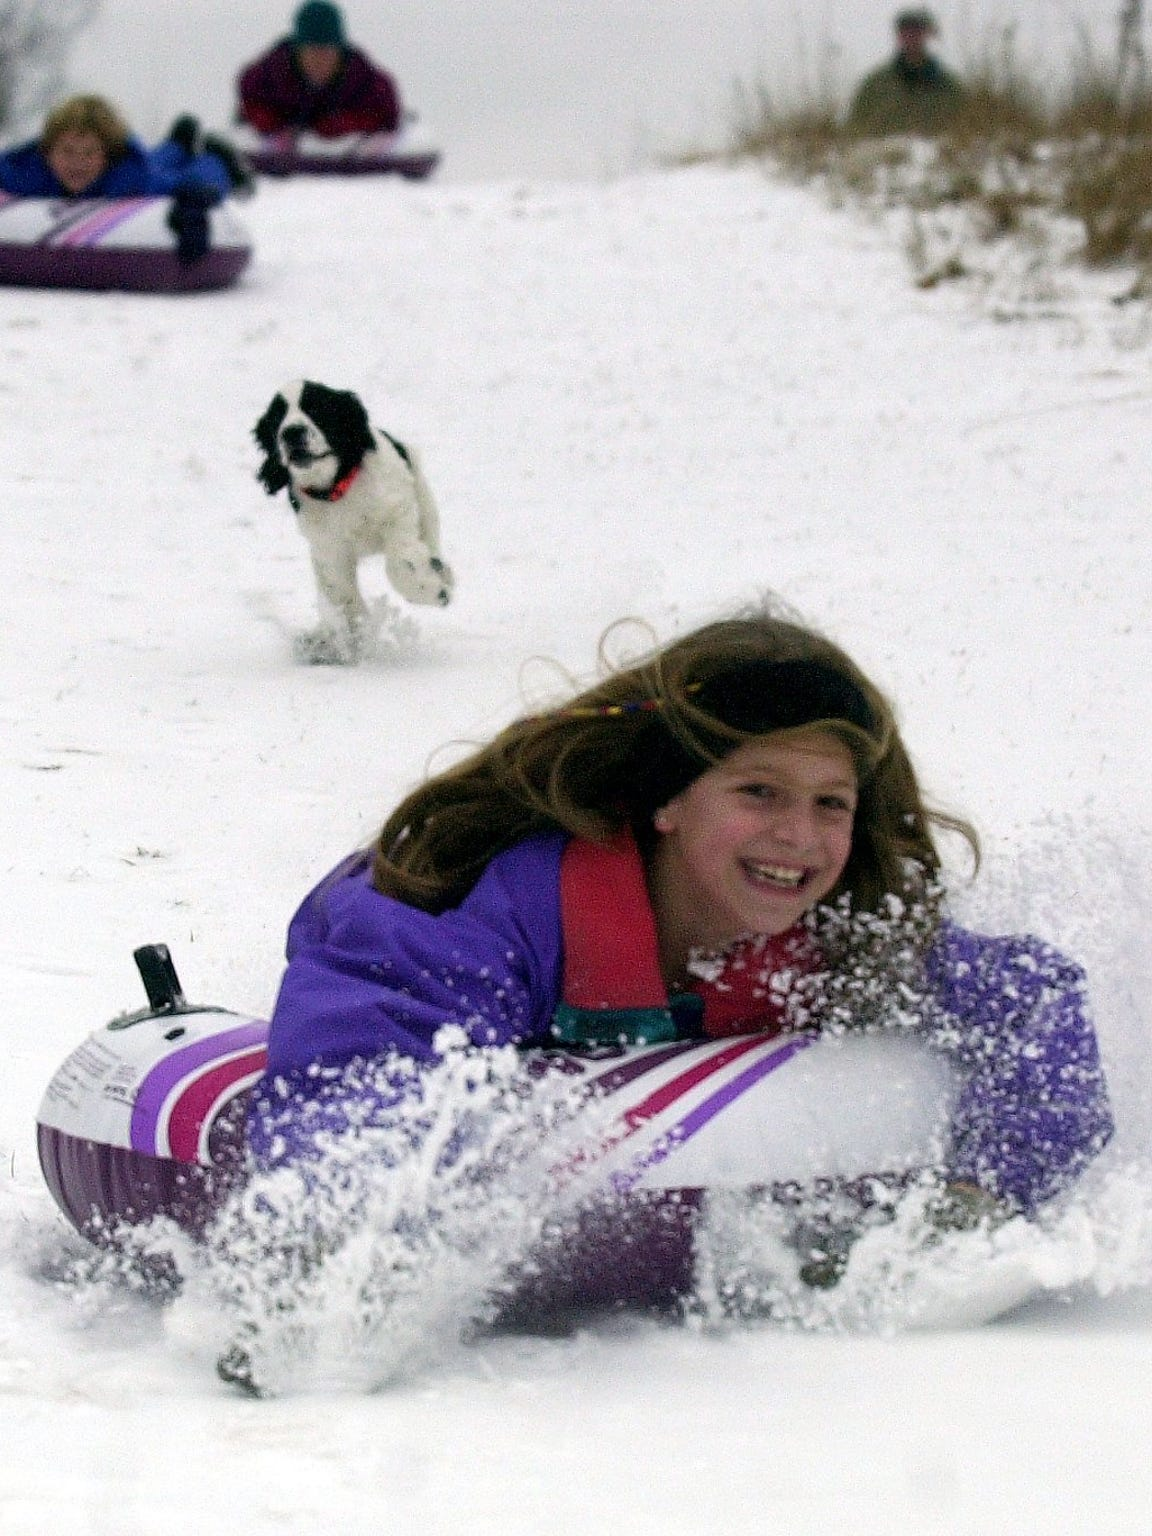 Sarah Martin, of Wausau, zooms down a hill near Sylvan Hill park in 2002 as Damon Cronce's dog, Spencer, chases her while sledding with her brother Adam and her mother, Laura.